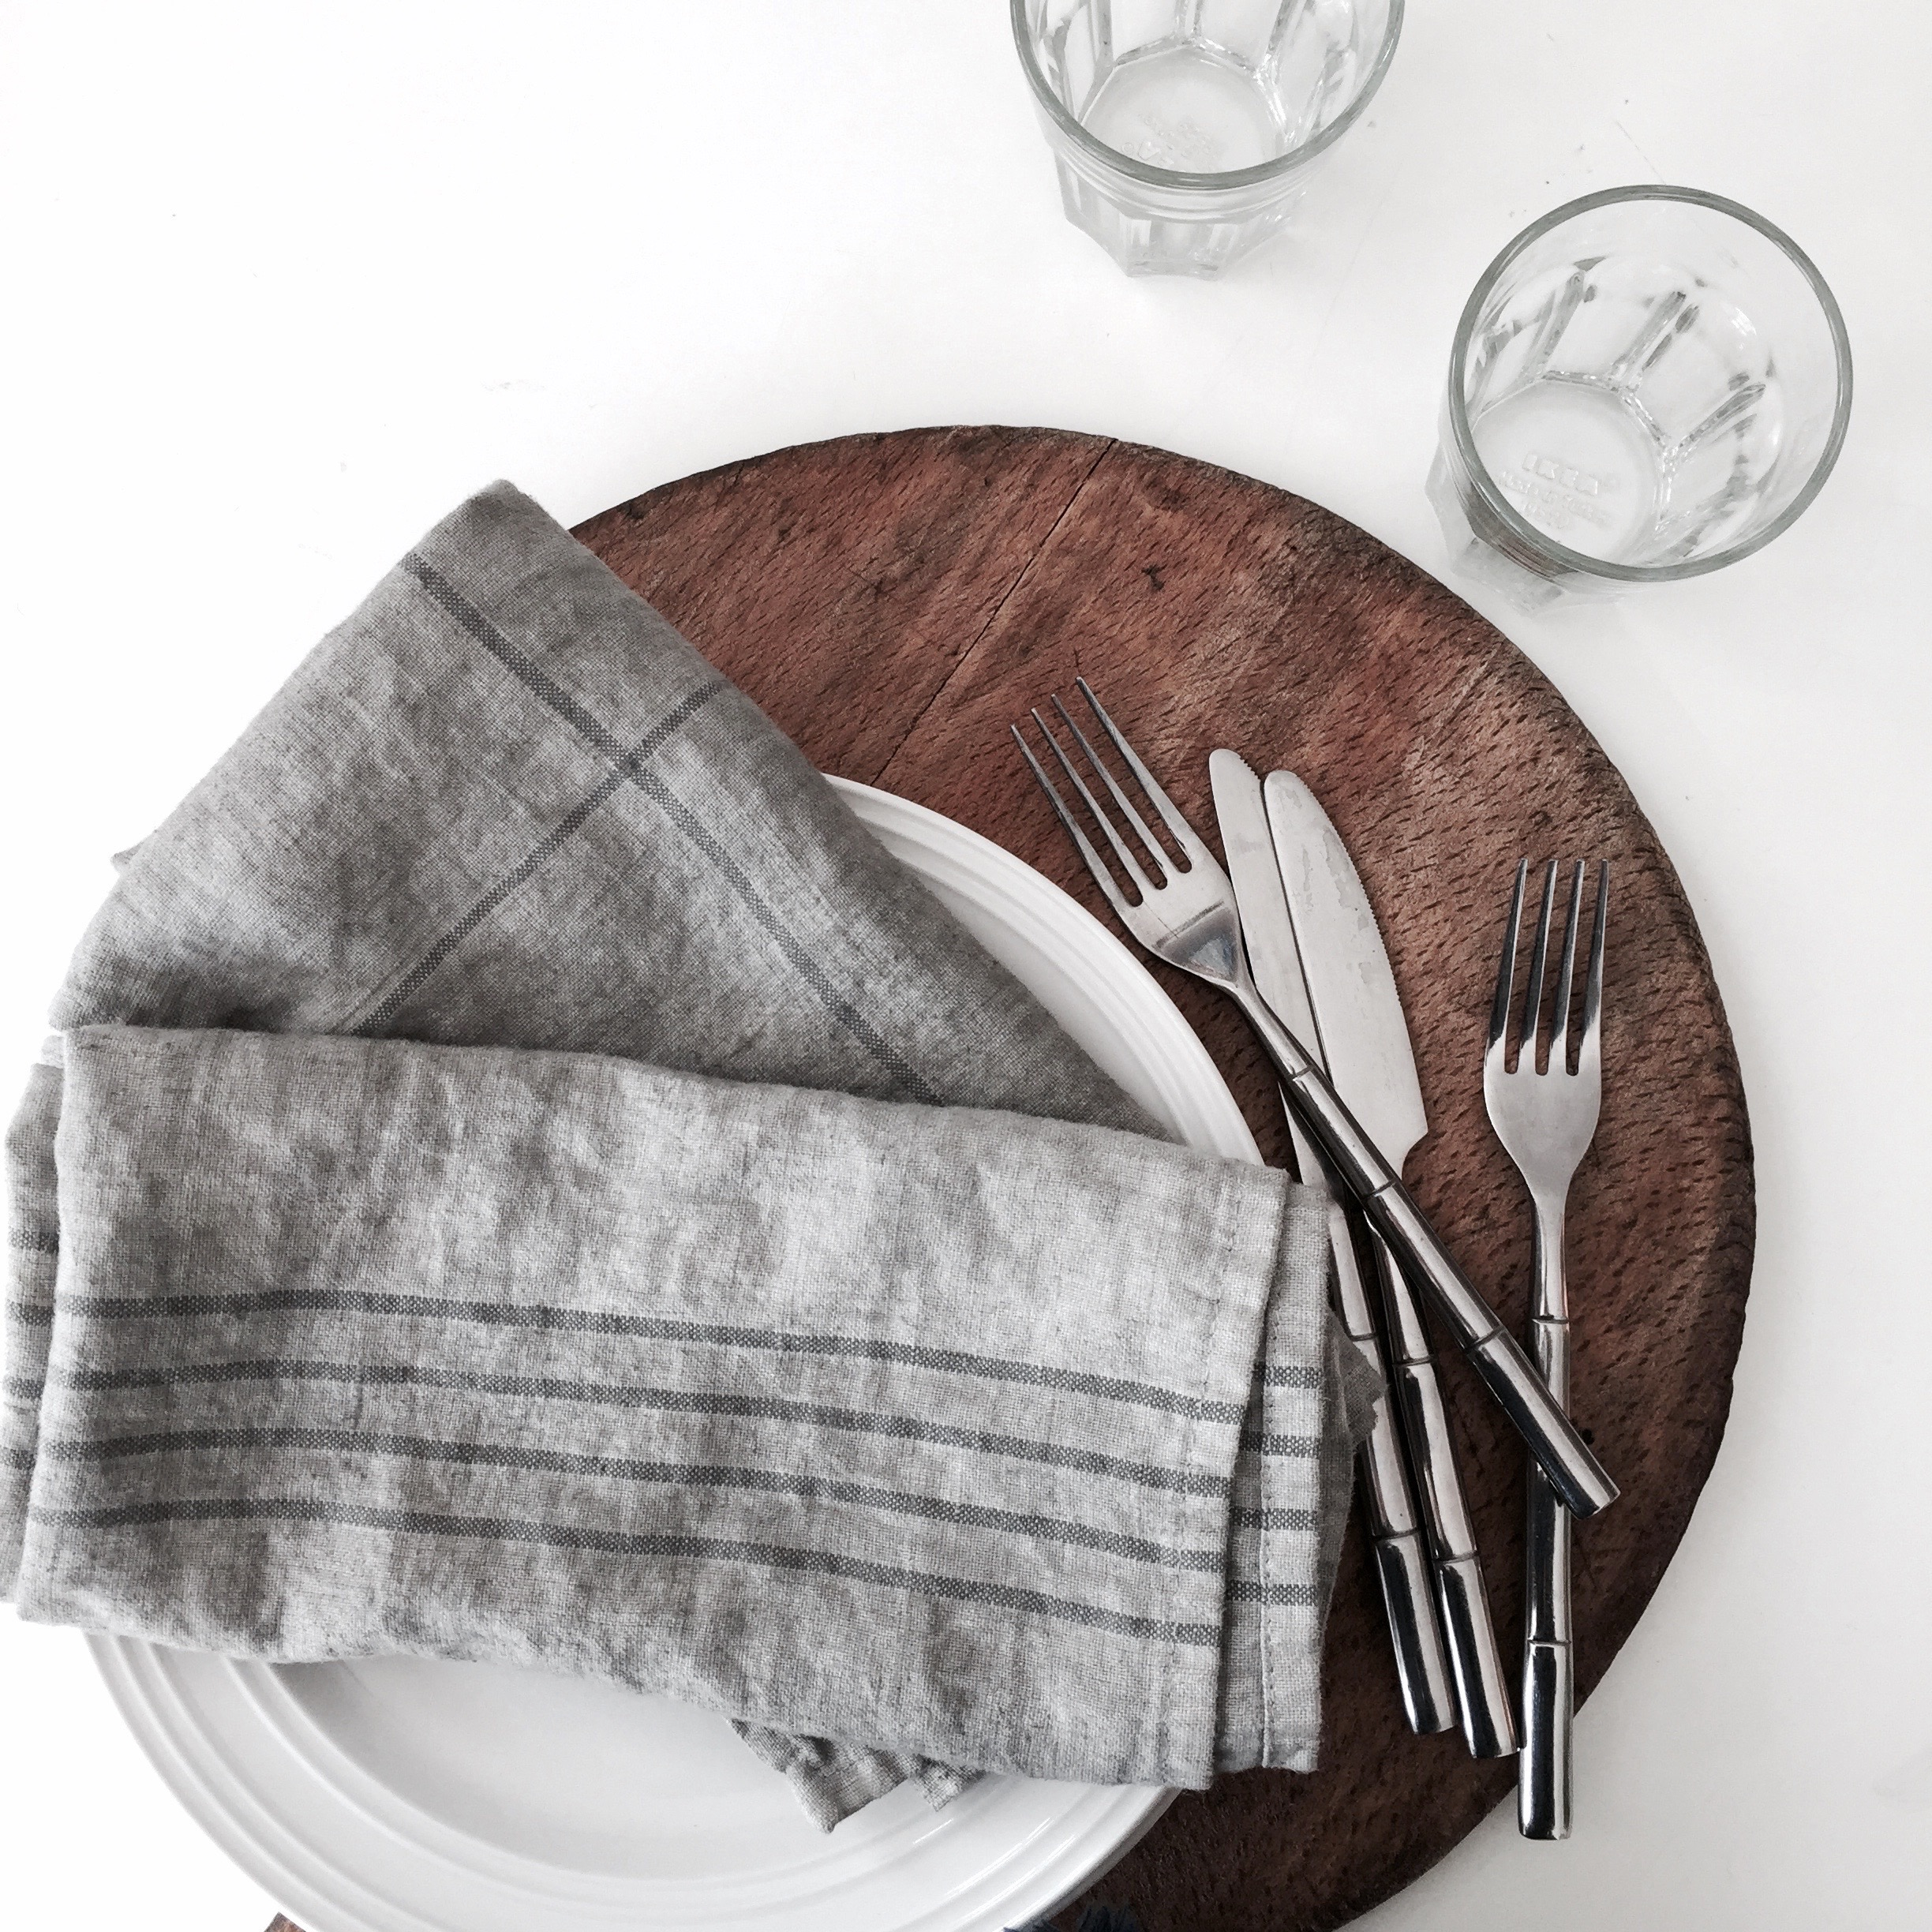 Chalk Paint Dyed Dishtowels Napkins